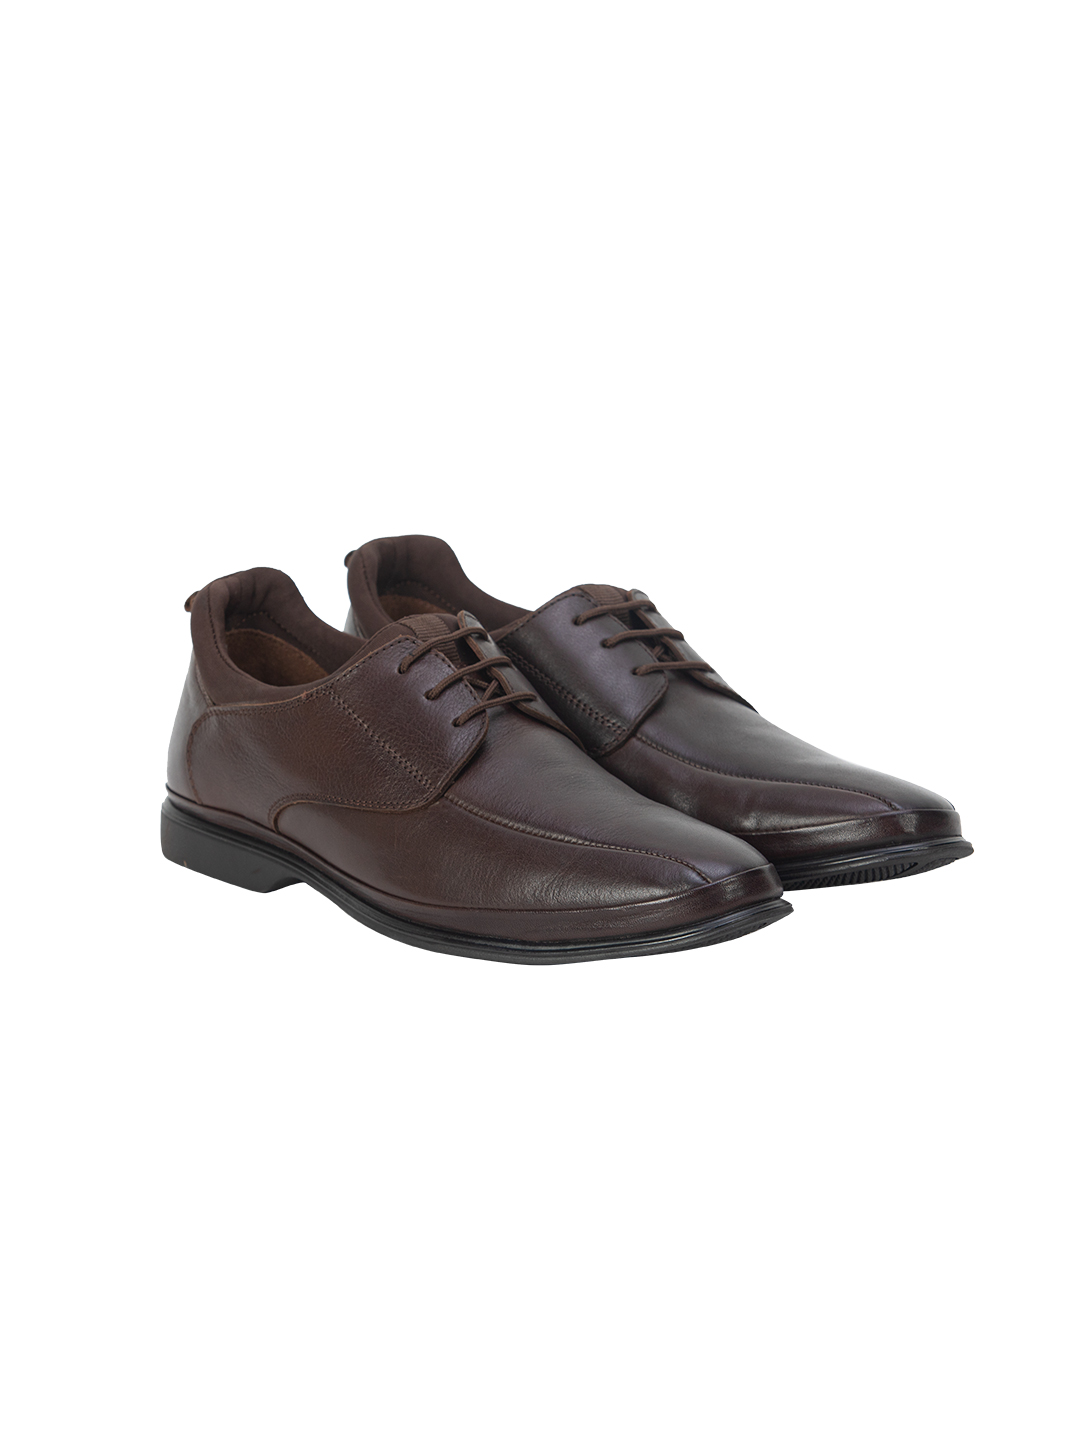 Buy Von Wellx Germany Comfort Brown Ryker Shoes Online in Ahmedabad